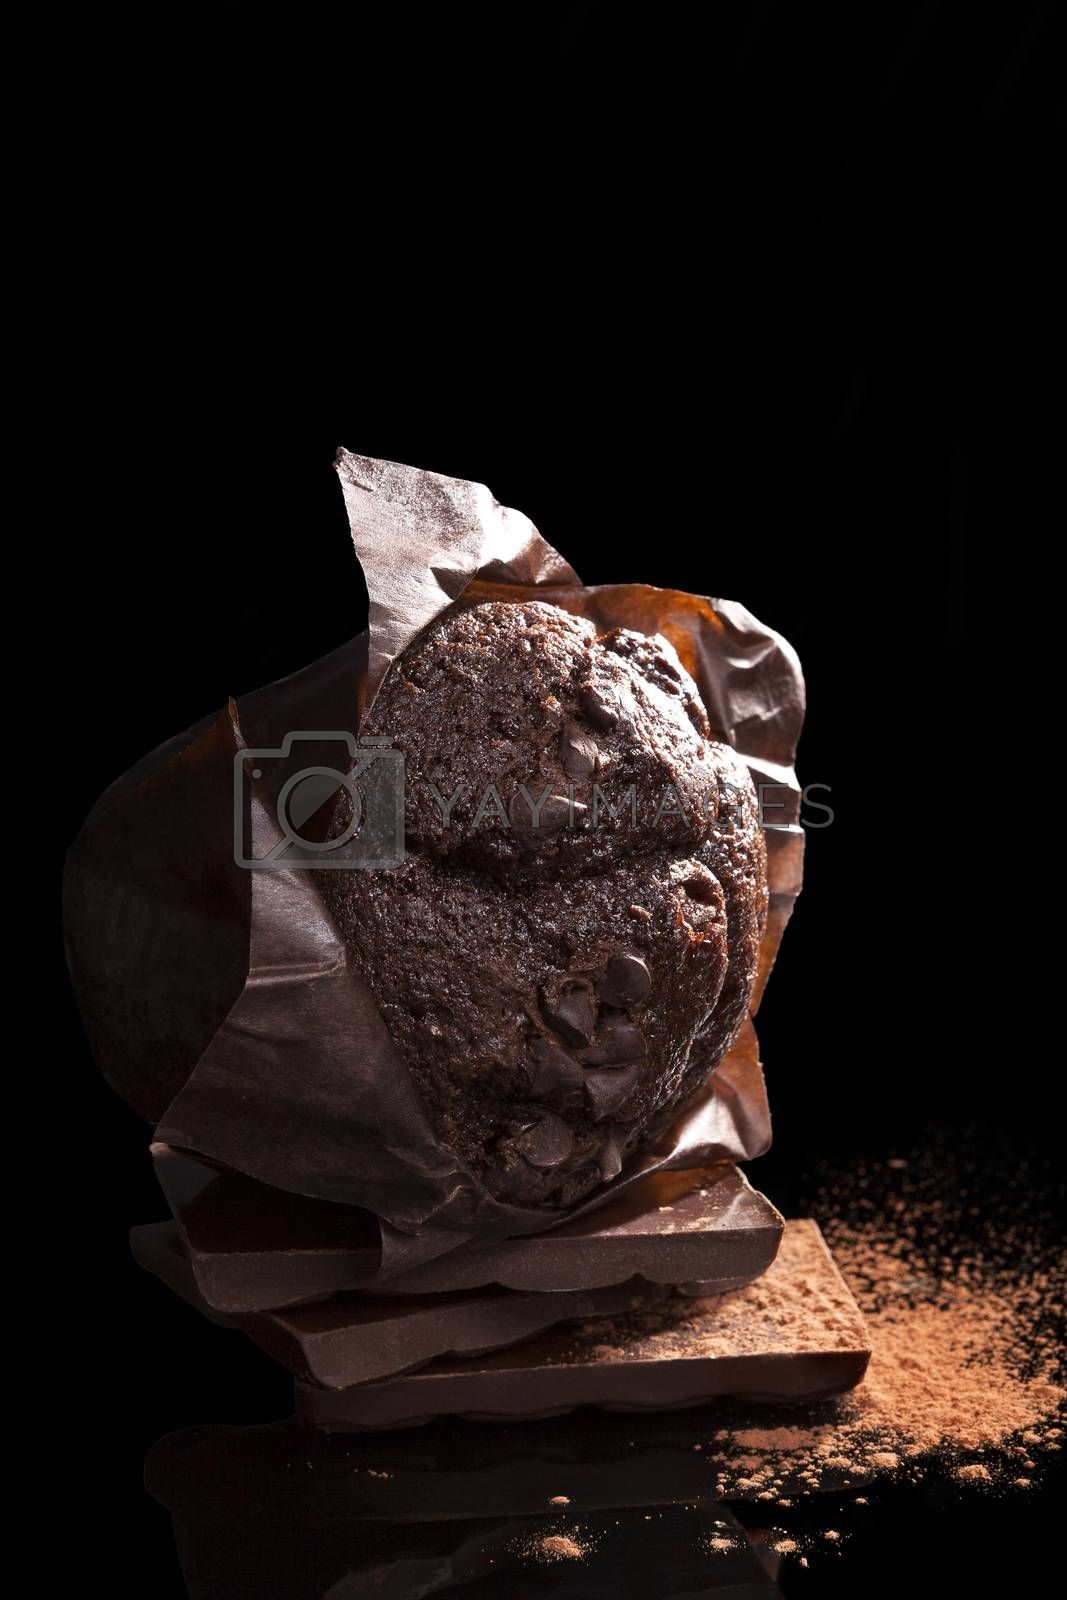 Chocolate muffin. by eskymaks